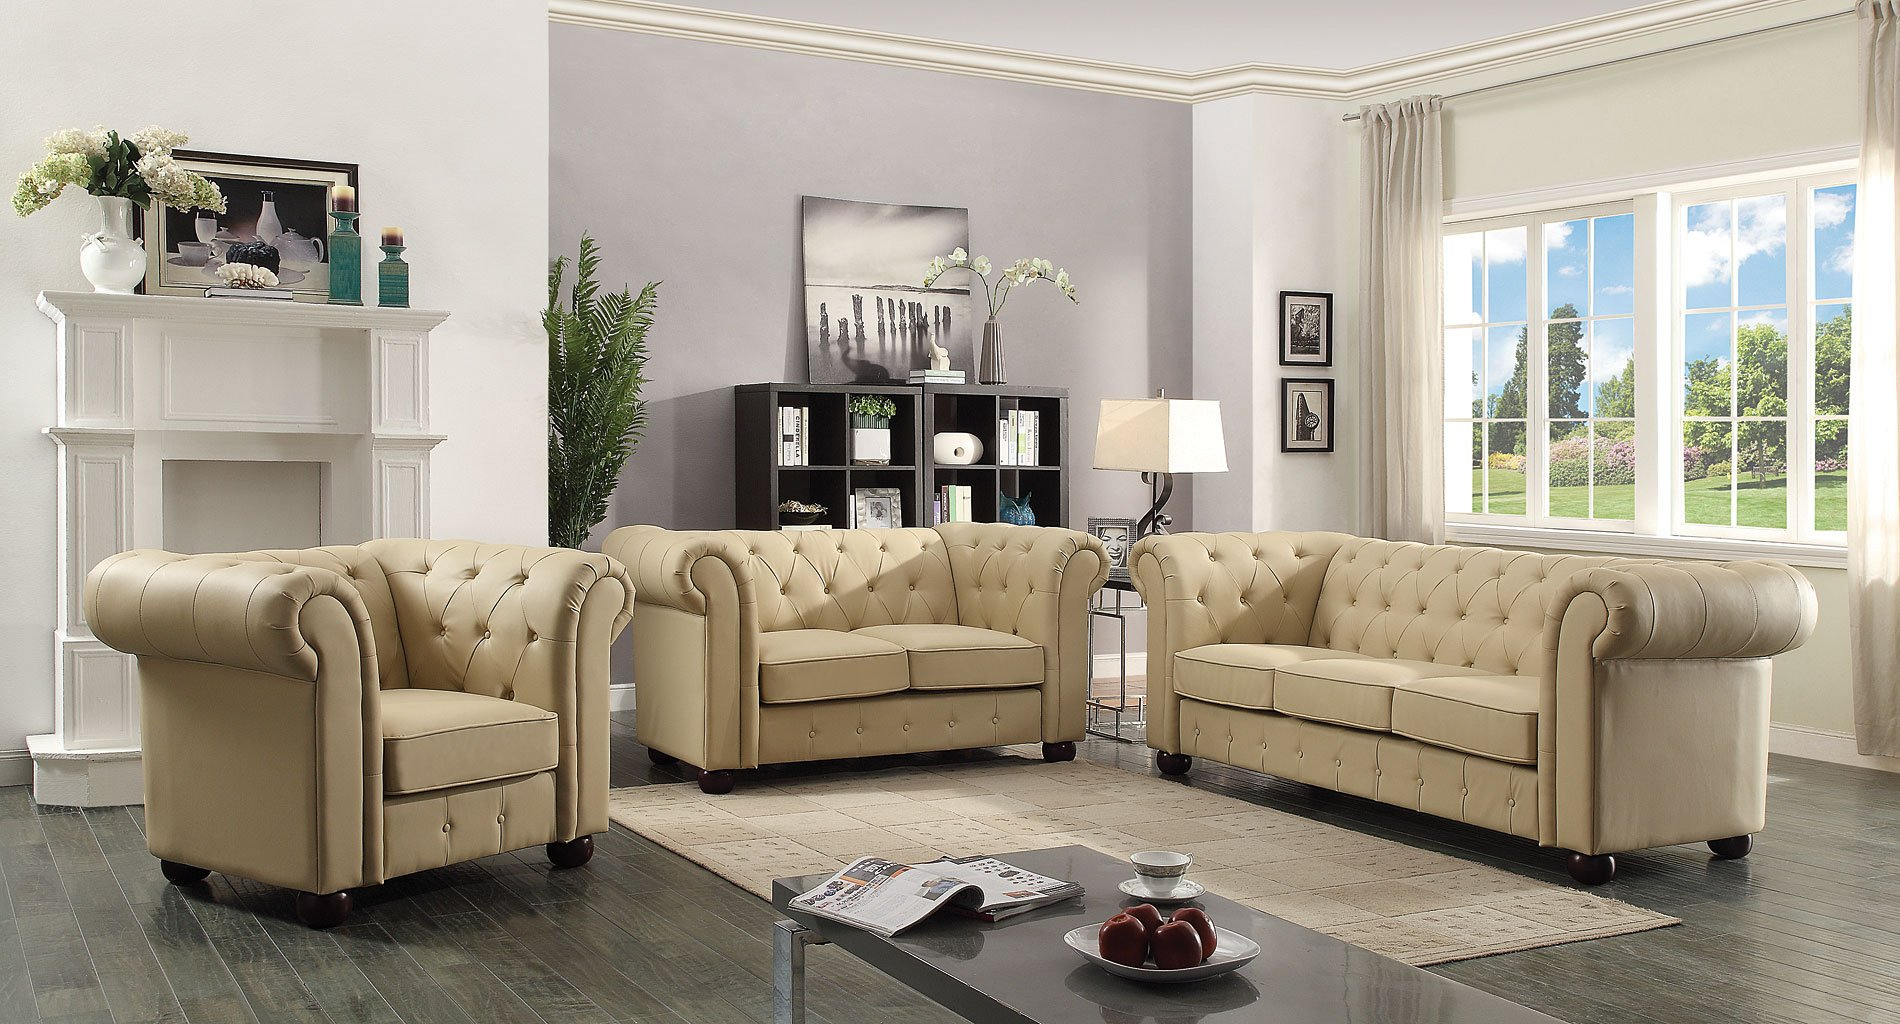 G492 Tufted Living Room Set (Beige)